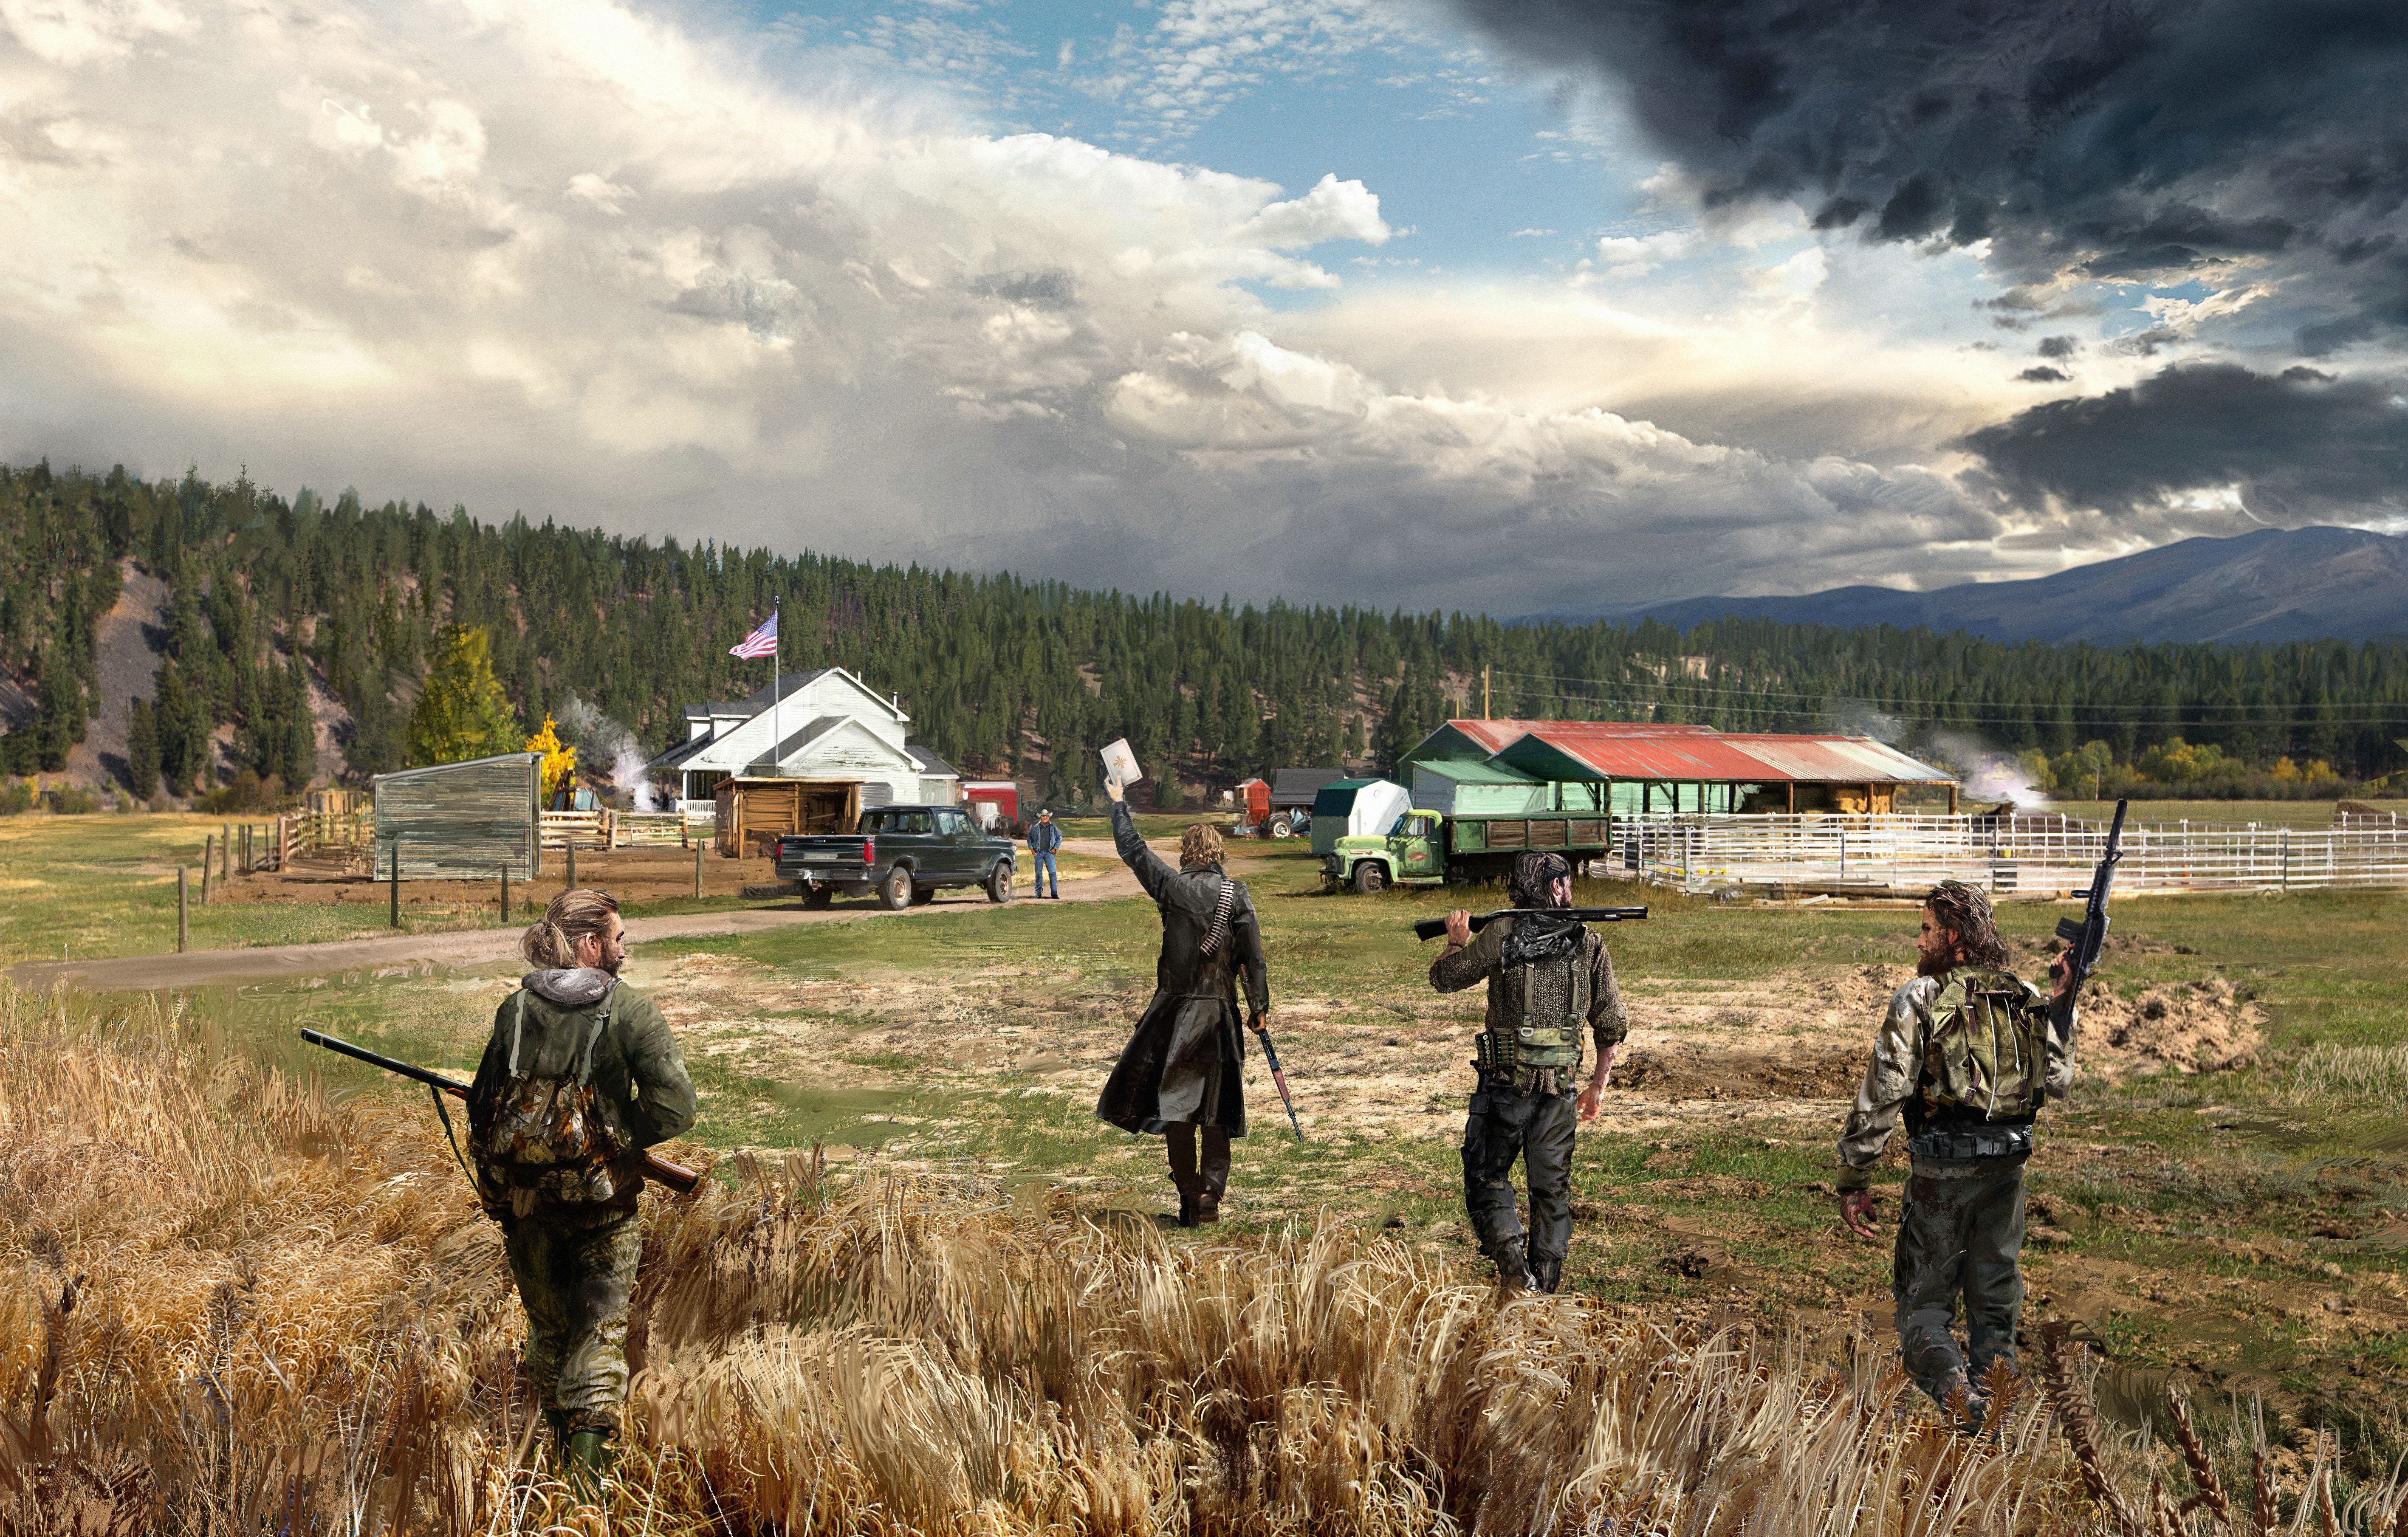 Far Cry 5 The Resistance Character Trailers Http Dpadjoy Com 2017 05 29 Far Cry 5 The Resistance Character Trailers Far Cry 5 Background Images Ubisoft